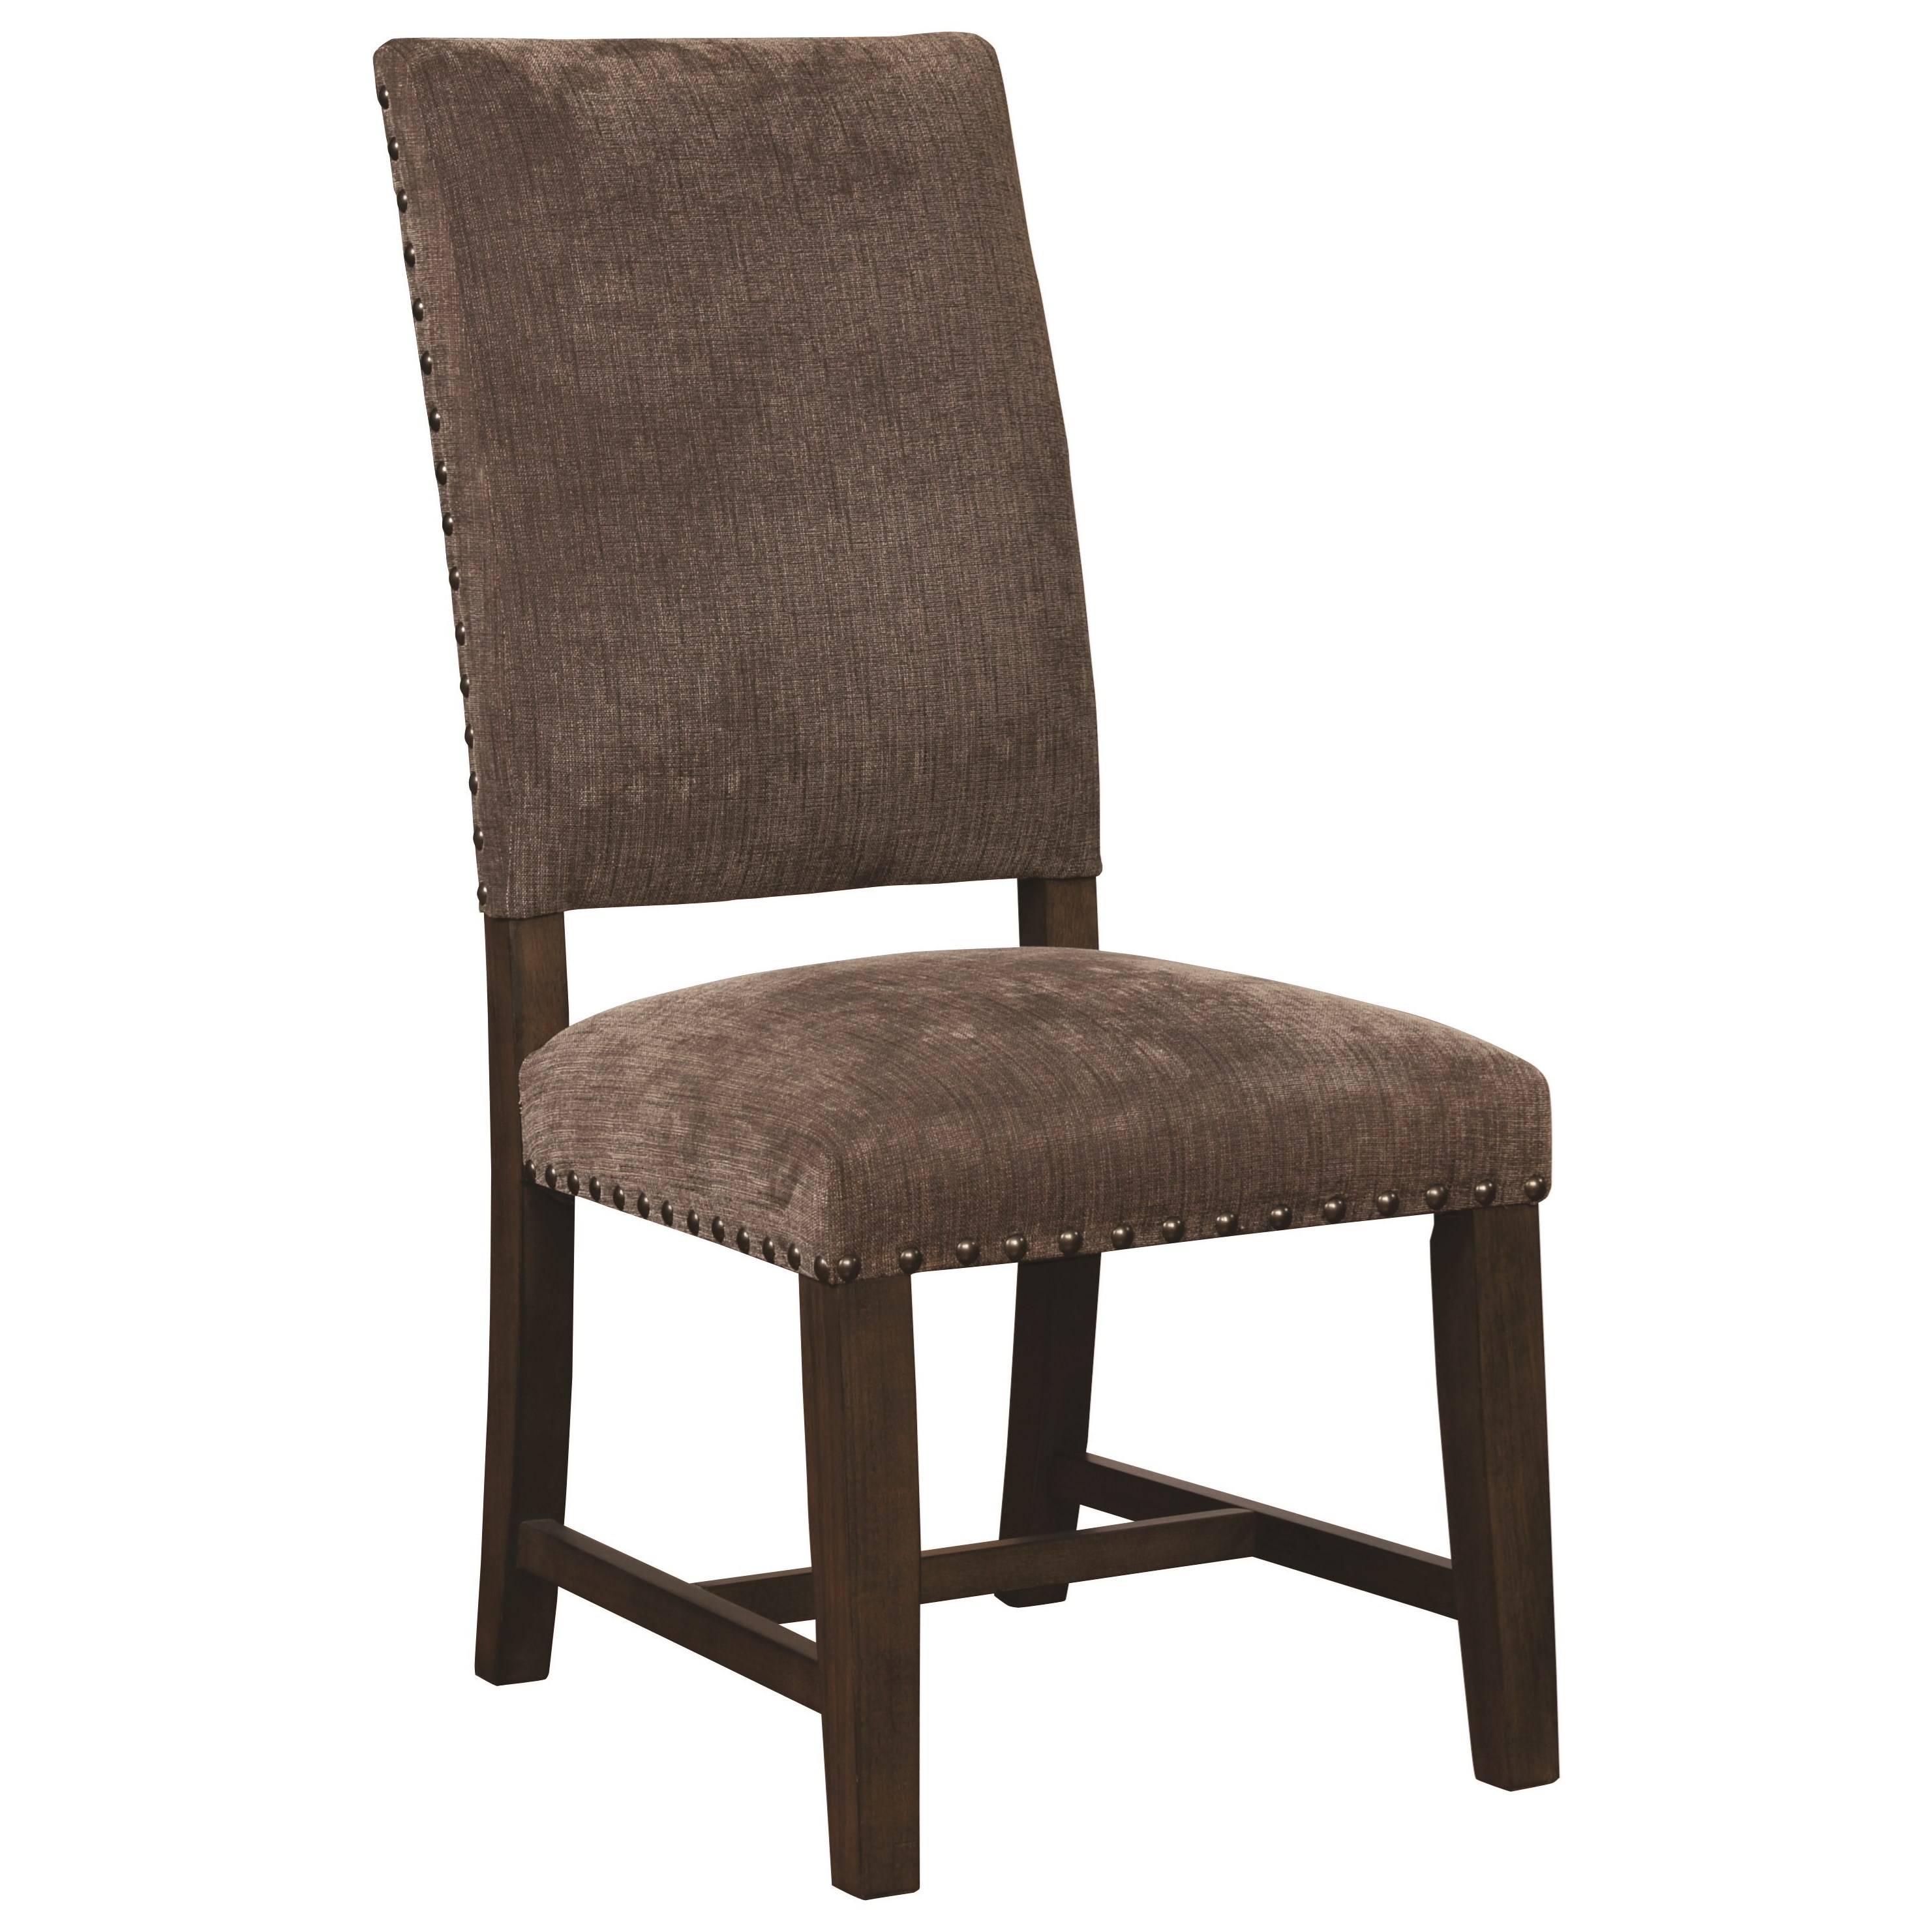 Scott Living 1028 Parson Chair - Item Number: 102819